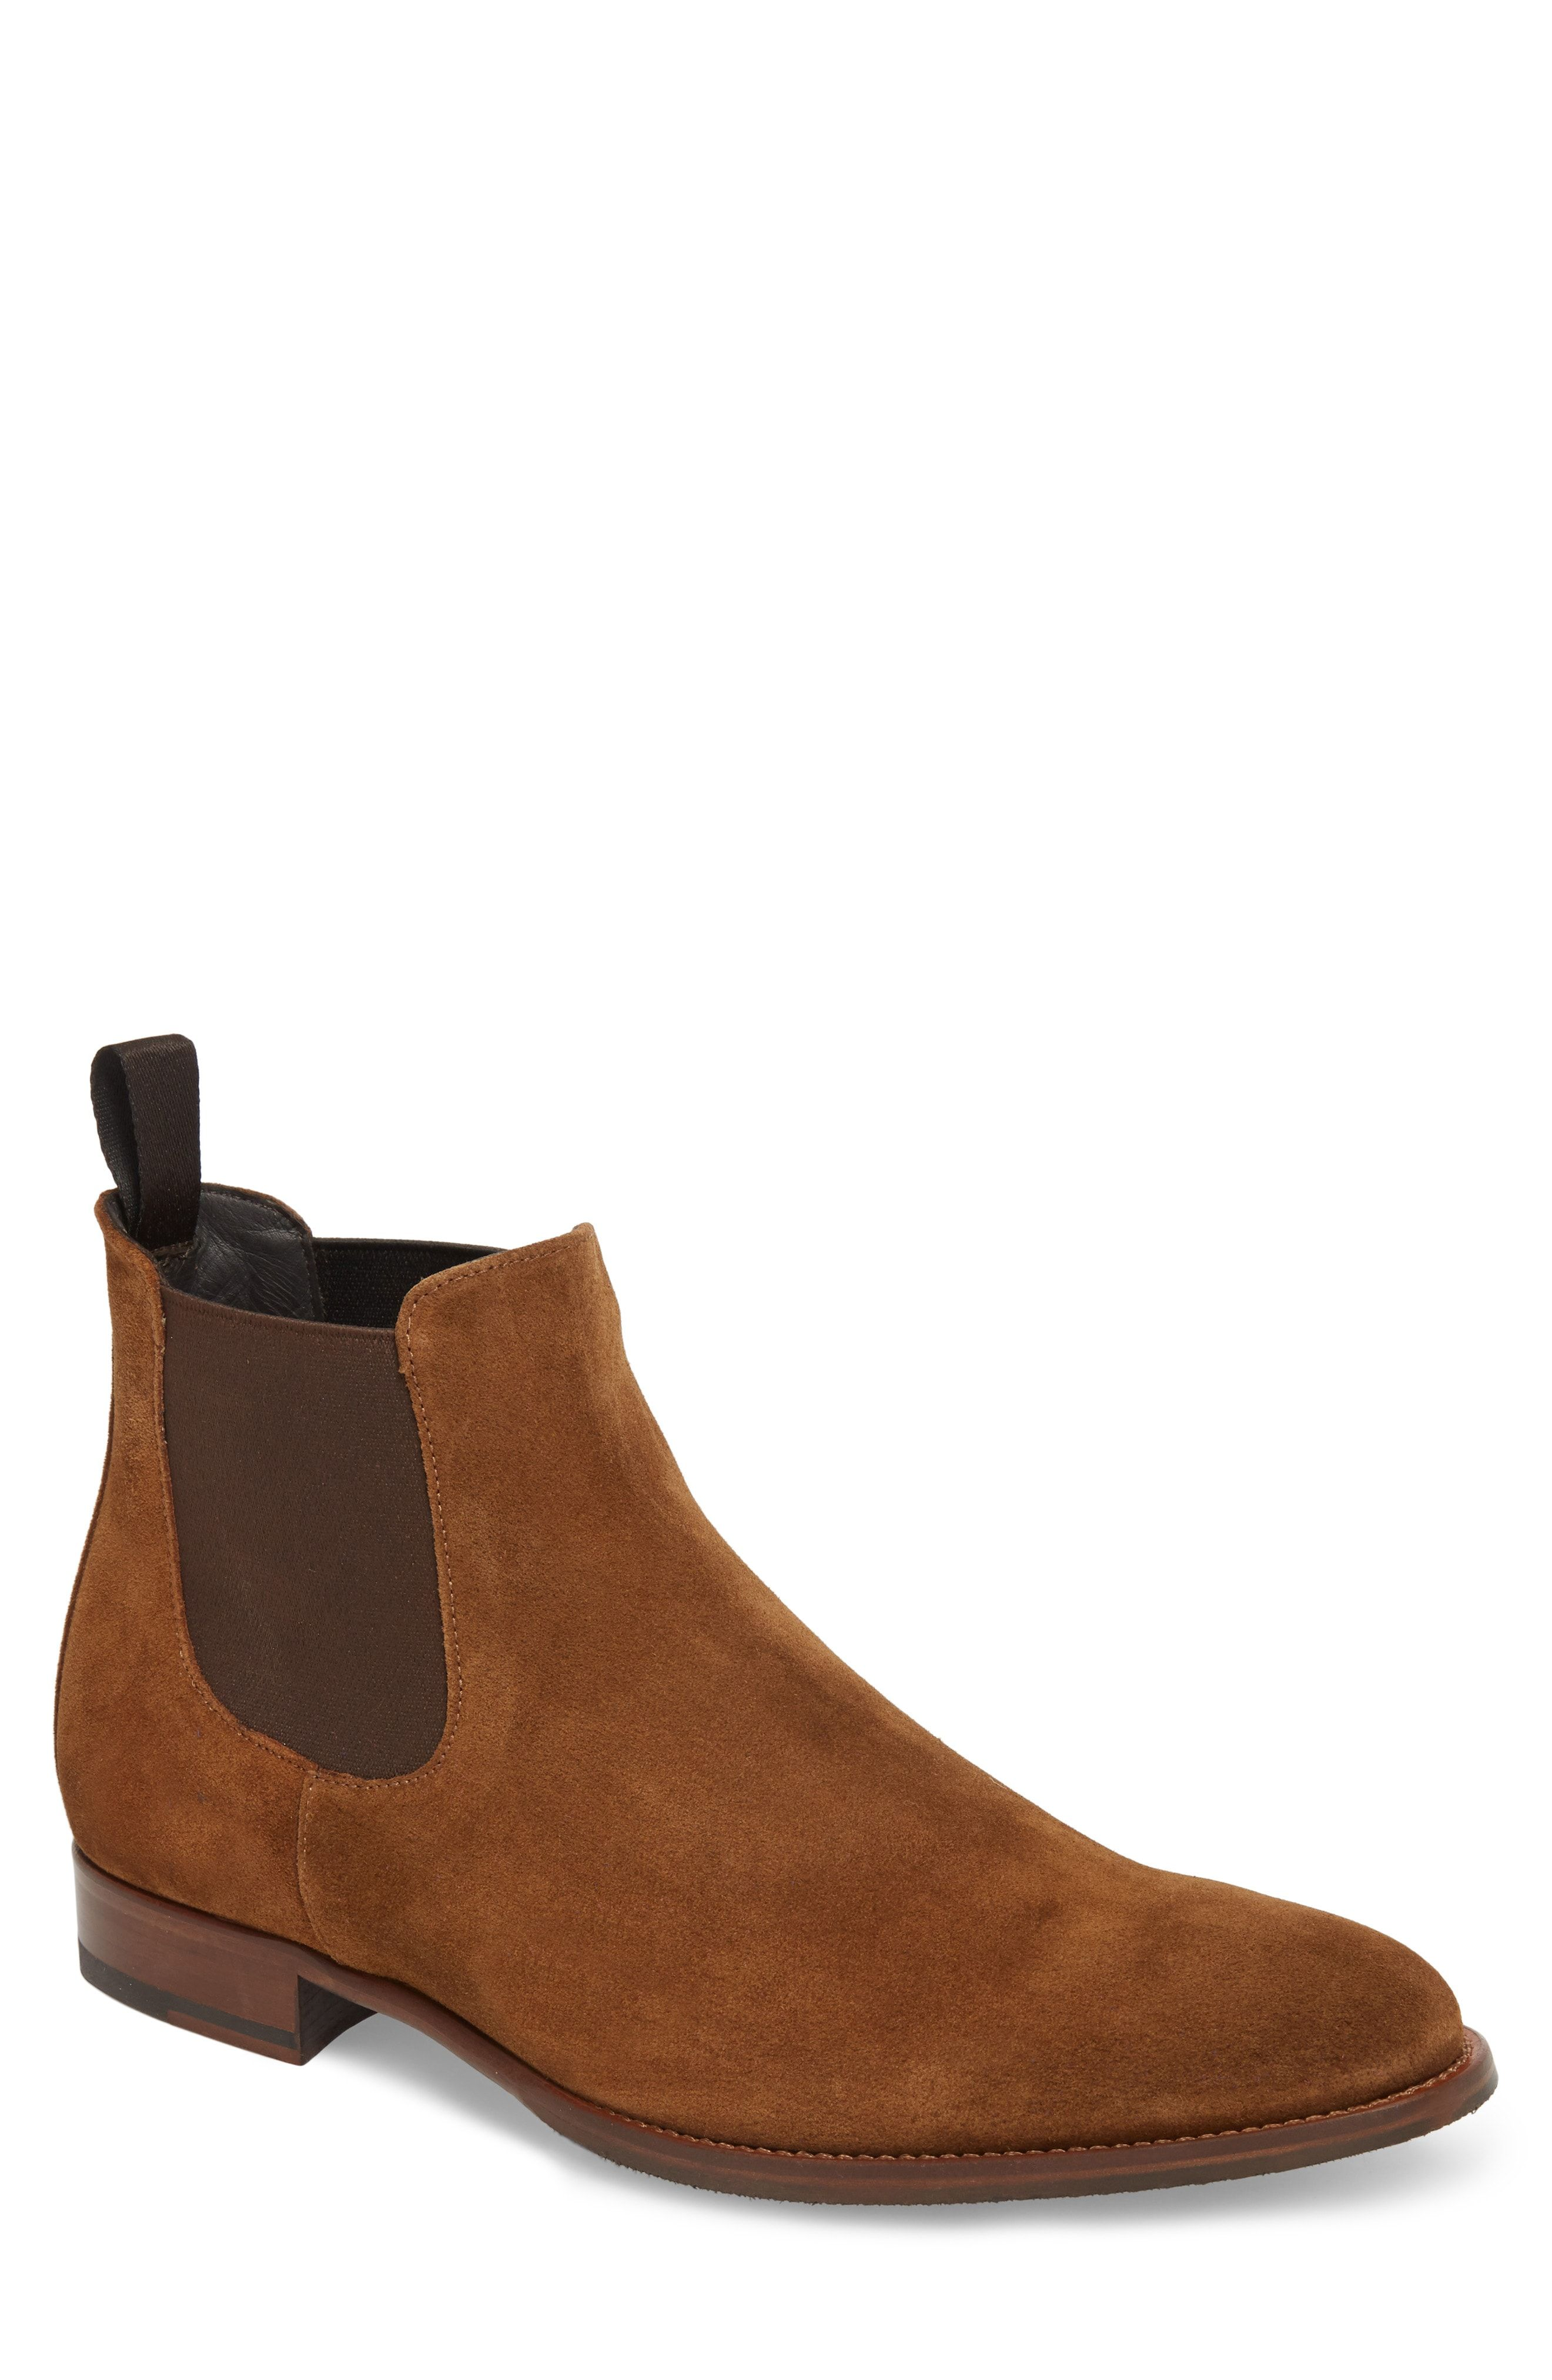 TO BOOT NEW YORK SHELBY MID CHELSEA BOOT. #tobootnewyork